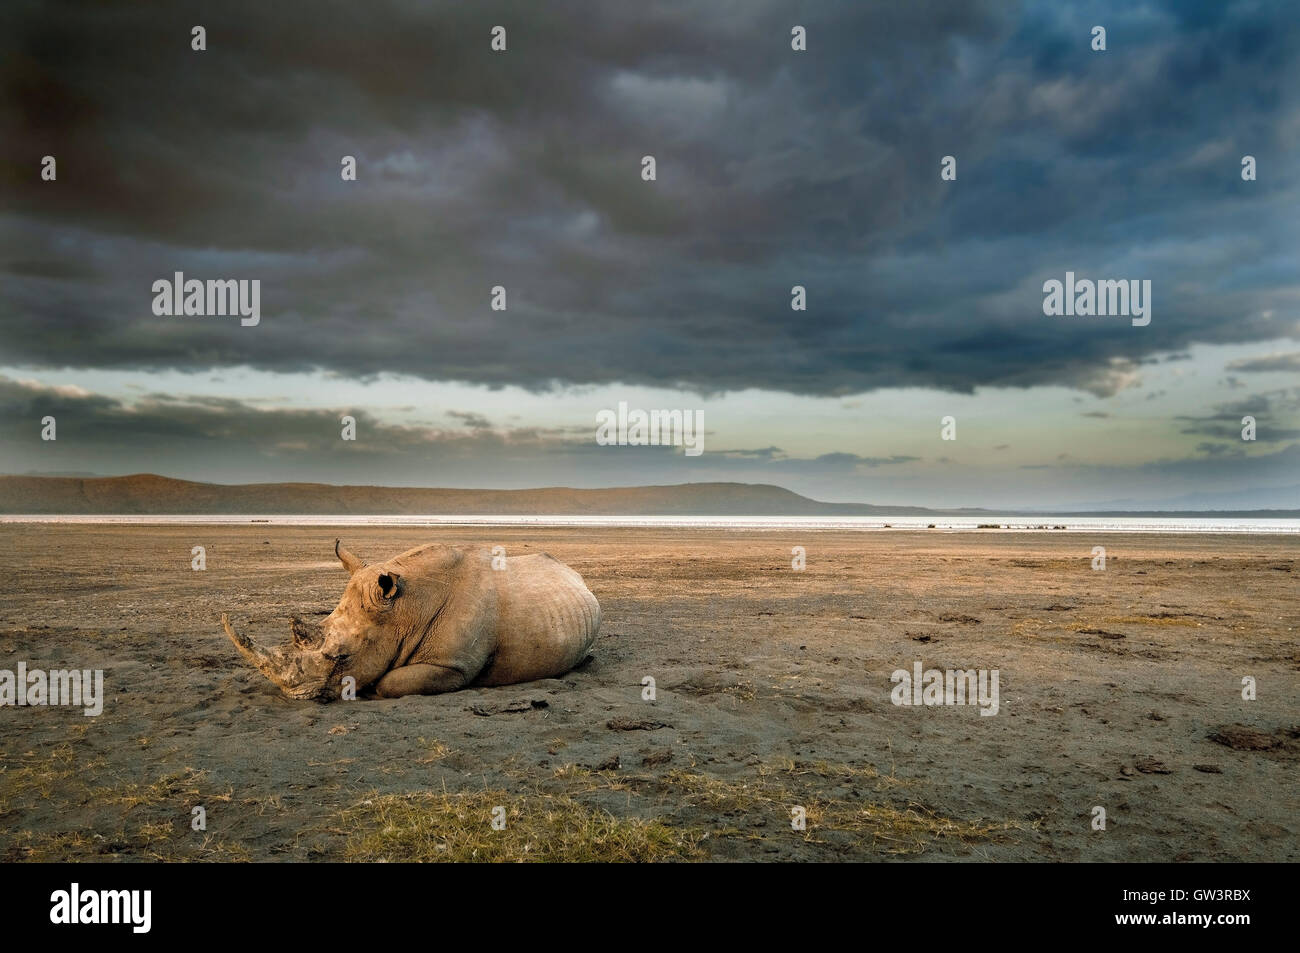 A lone rhinoceros sleeps on the shores of Lake Nakuru, Kenya. - Stock Image